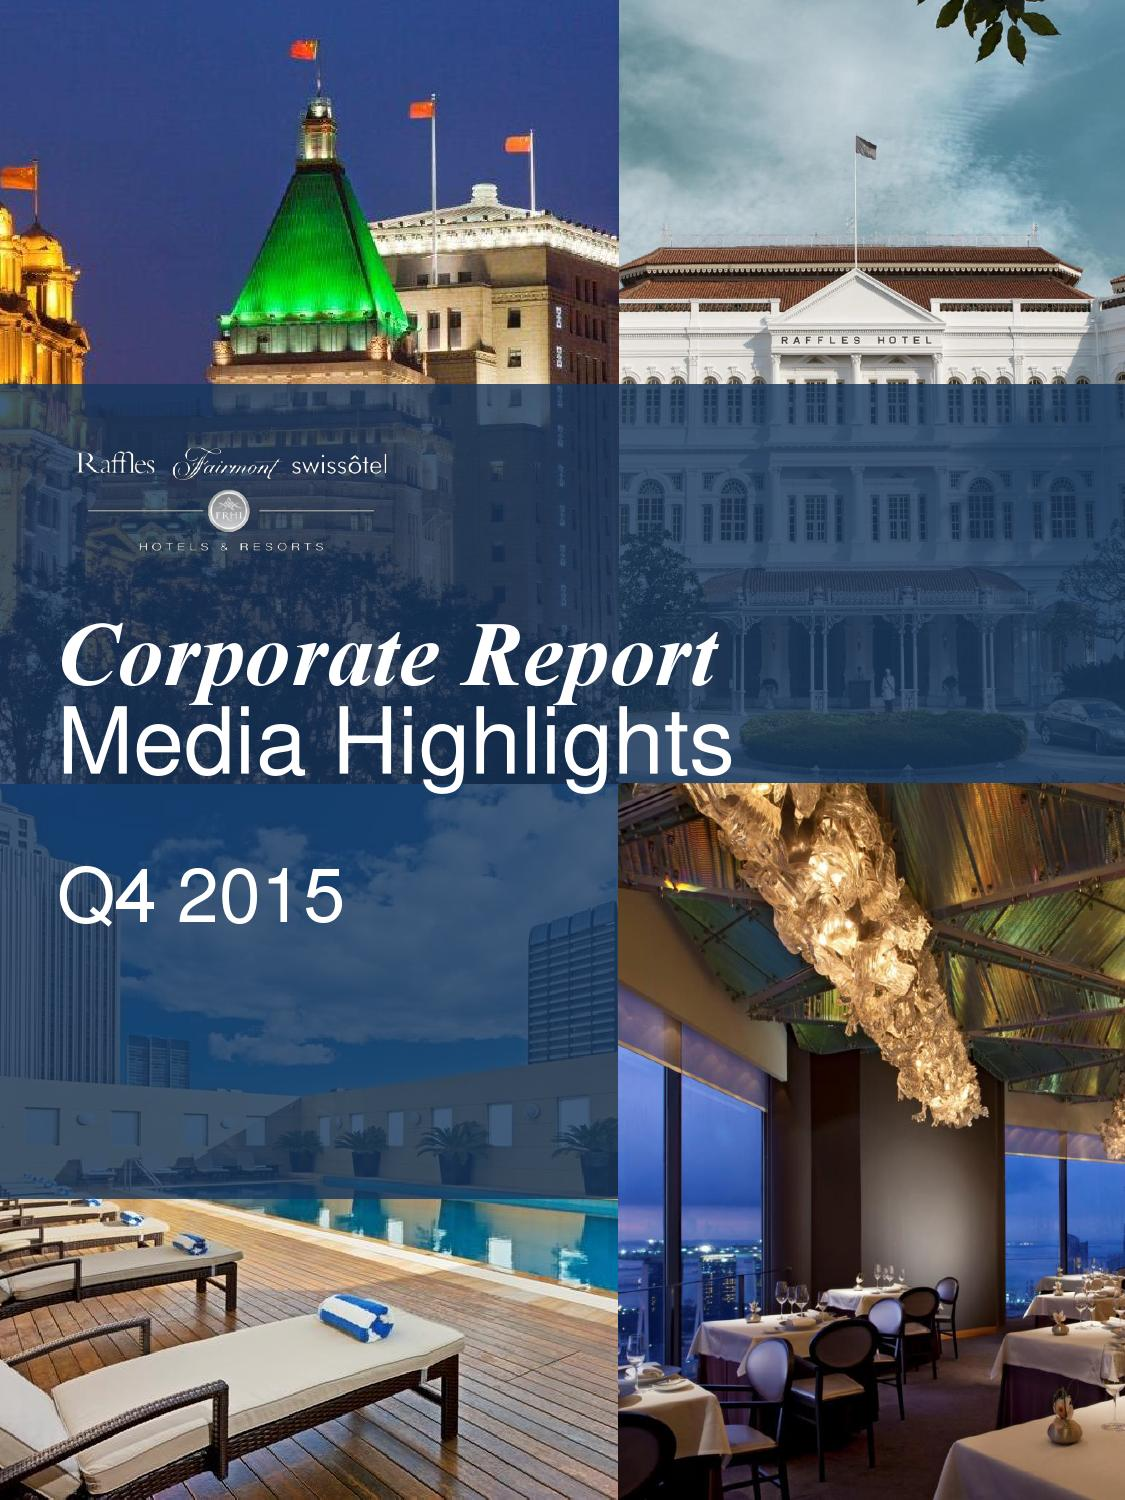 Q4 2015 Media Highlights by FRHI PR - issuu